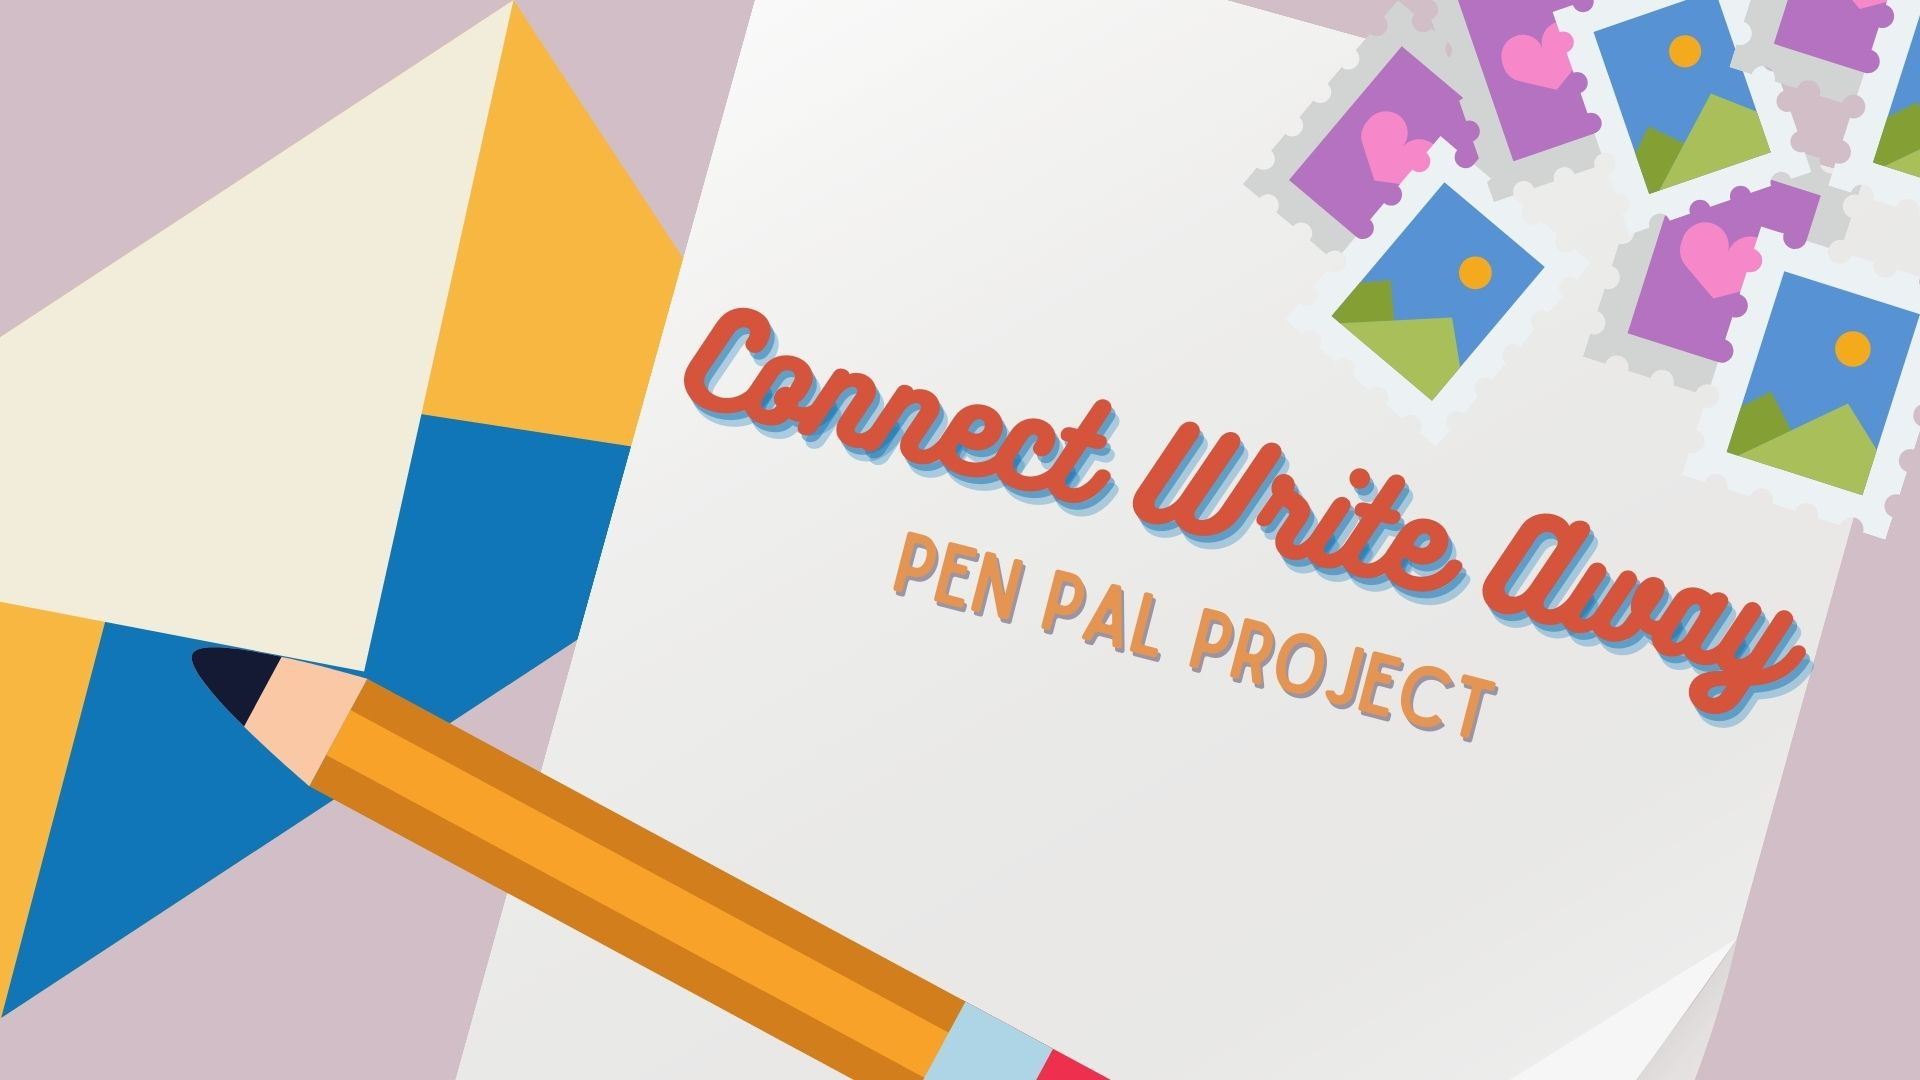 Chatham Area Public Library Connecting the Community Through Pen Pal Project